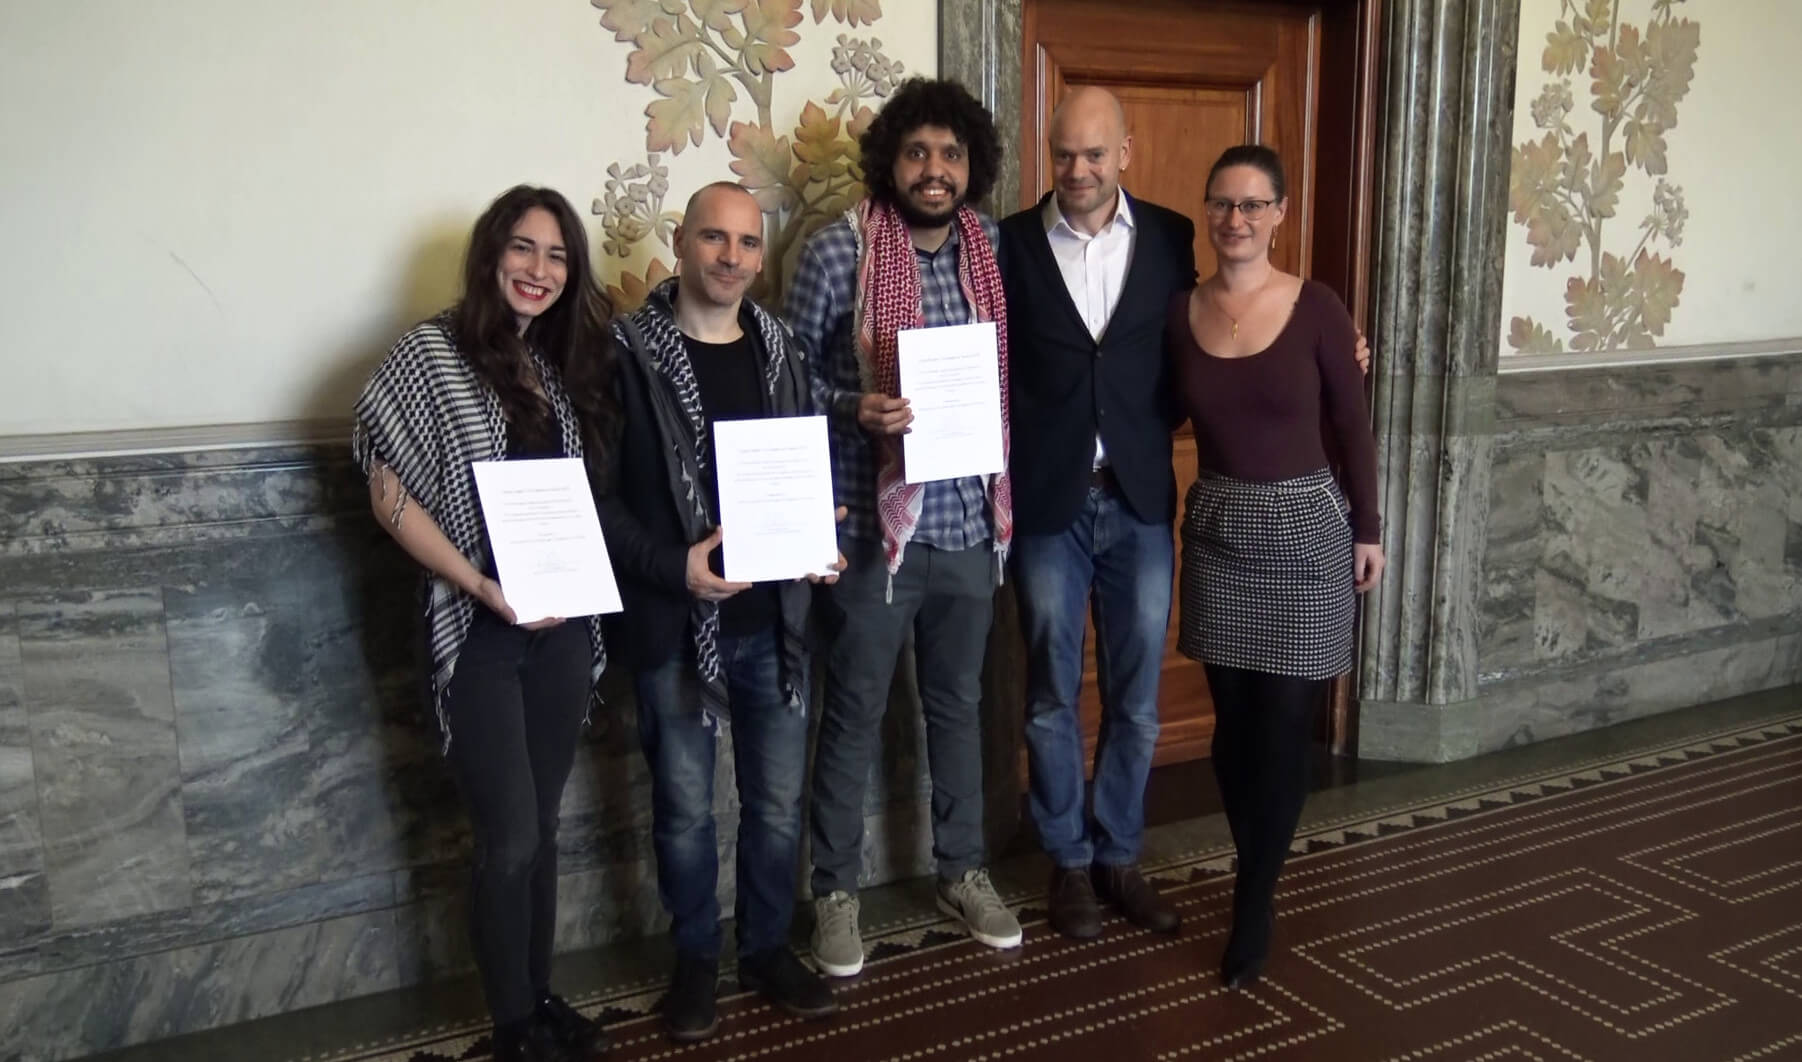 The Humboldt 3, Stavit Sinai, Ronnie Barkan, and Majed Abusalama, receive an award from Copenhagen's Mayor for Technical and Environmental Affairs